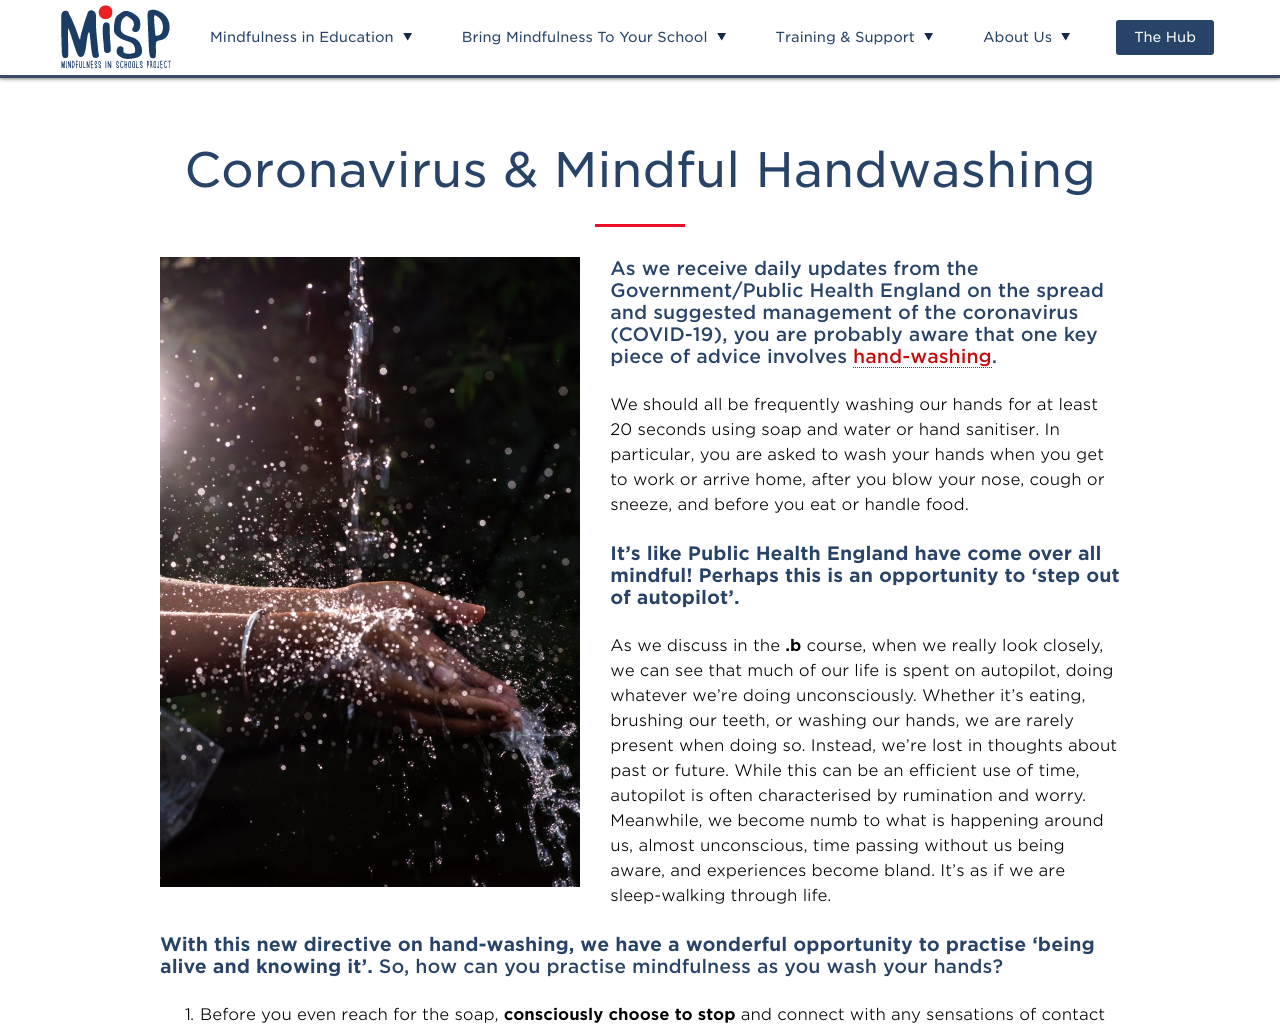 Washing Your Hands - Part 2